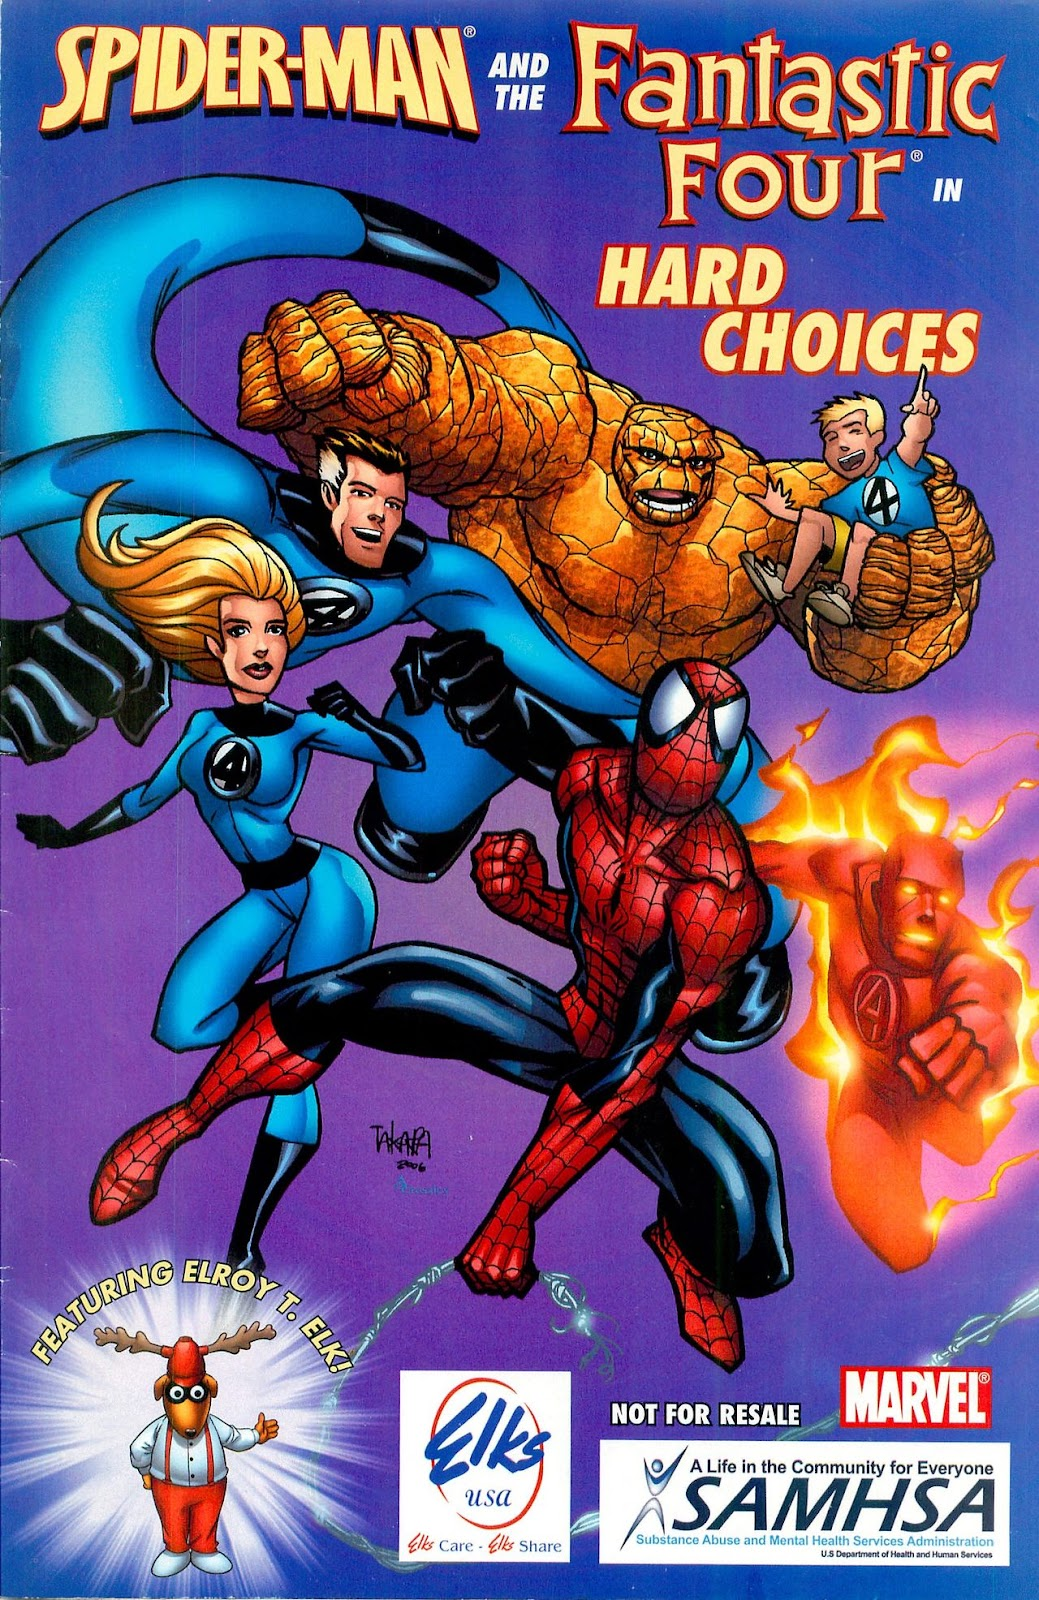 Spider-Man and the Fantastic Four in Hard Choices Full Page 1